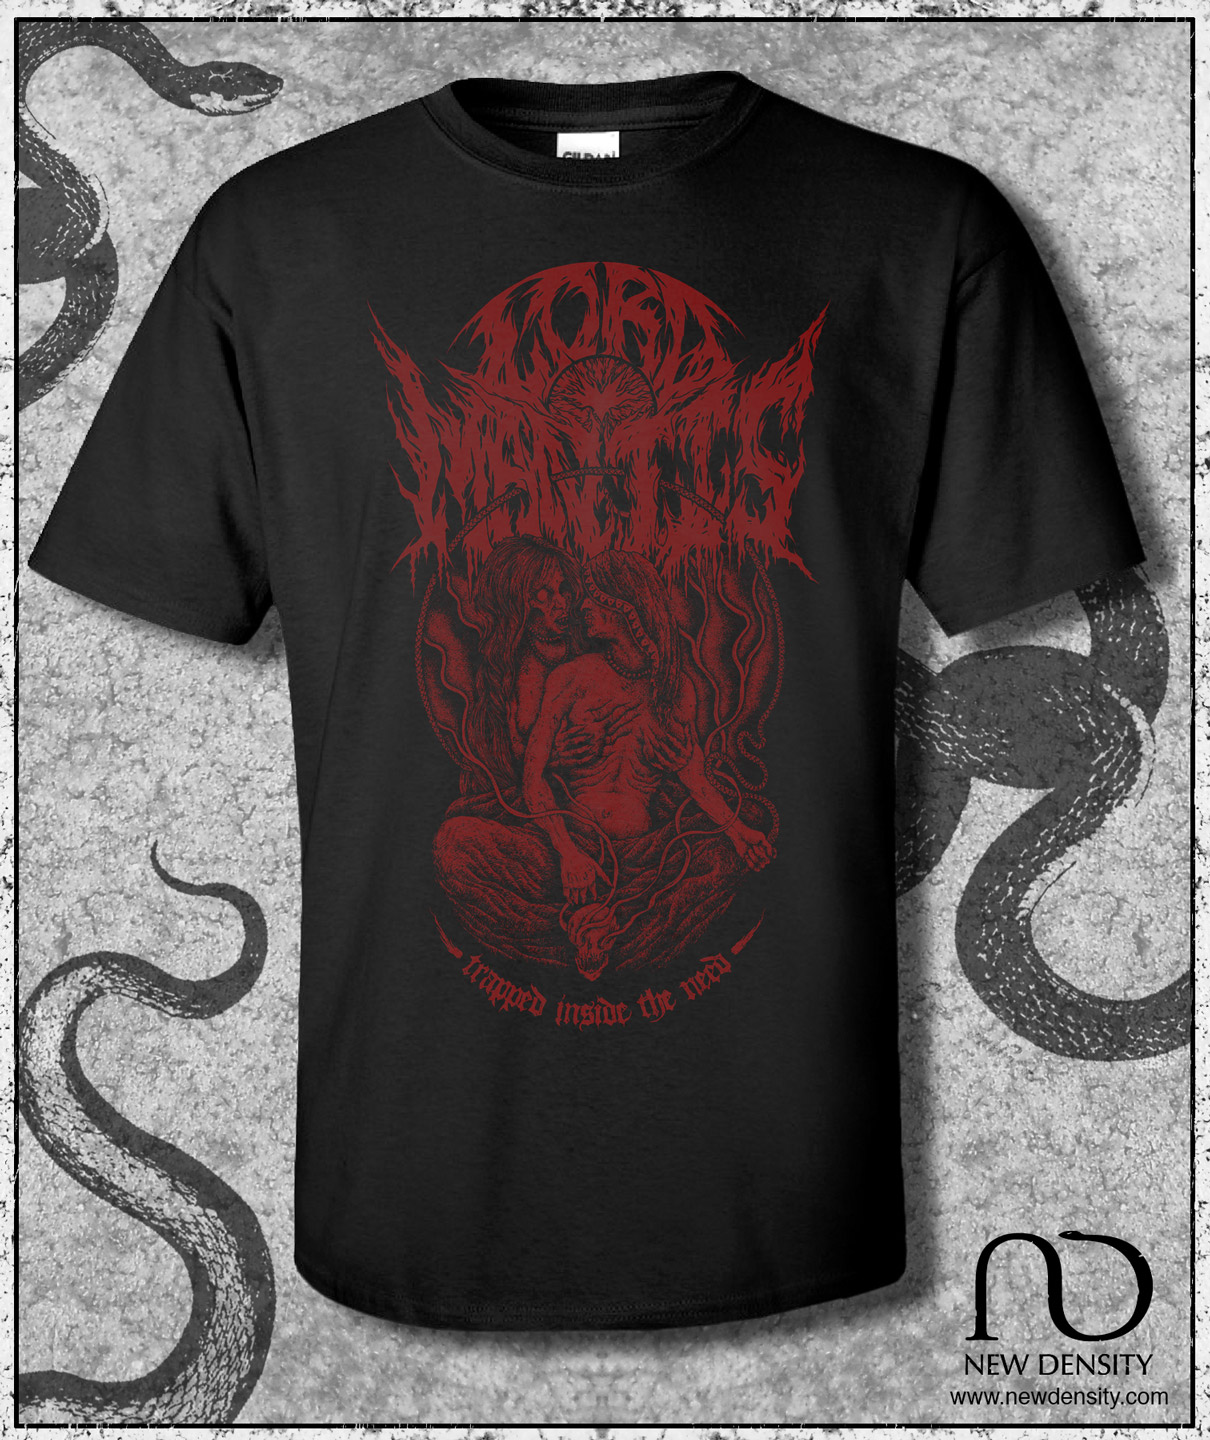 Lord Mantis – Trapped Inside The Need Shirt (Red/Black) – New Density